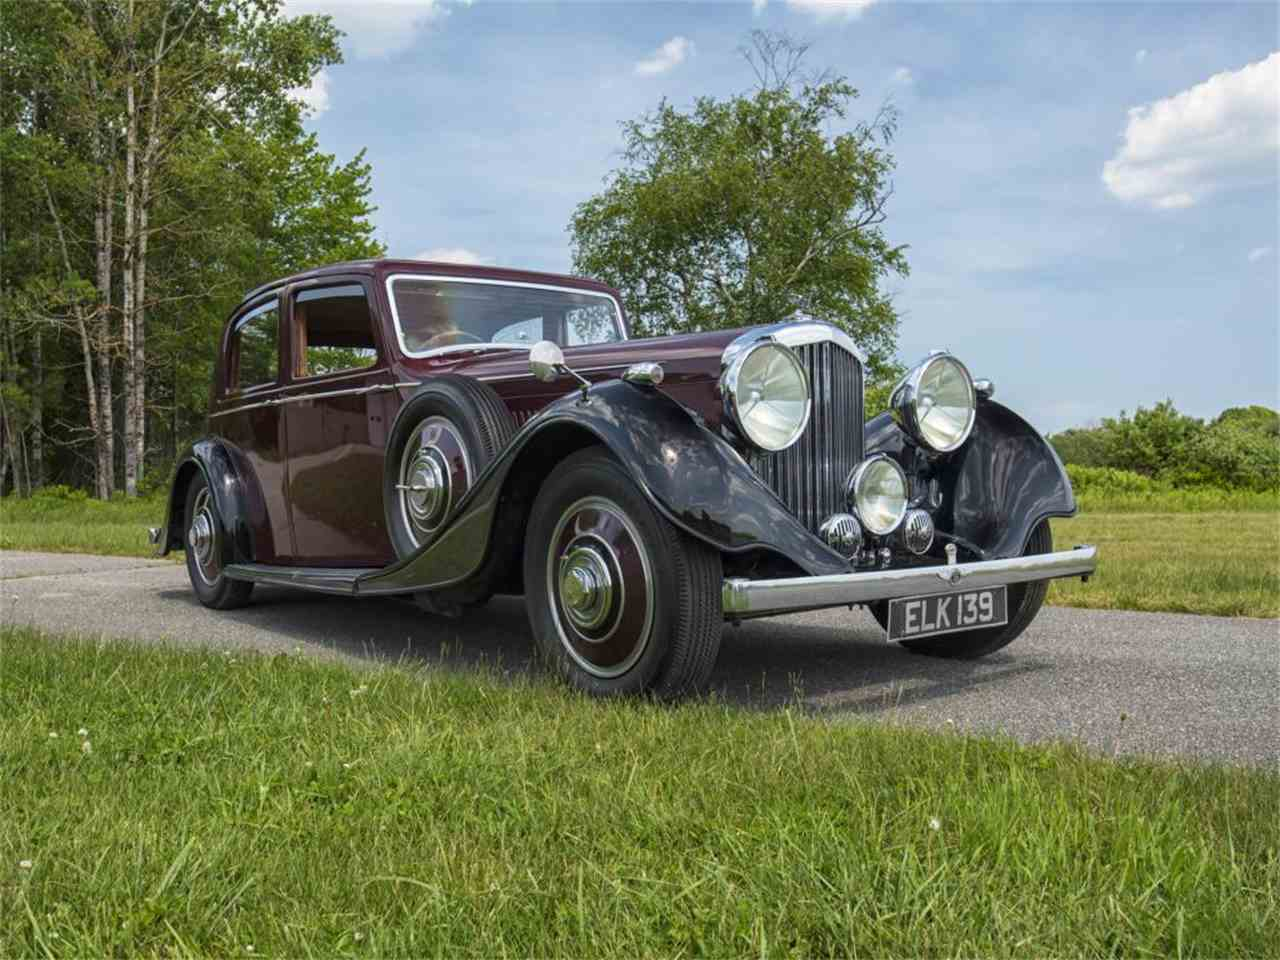 1937 Bentley 4-1/4 Litre for Sale | ClassicCars.com | CC-994940